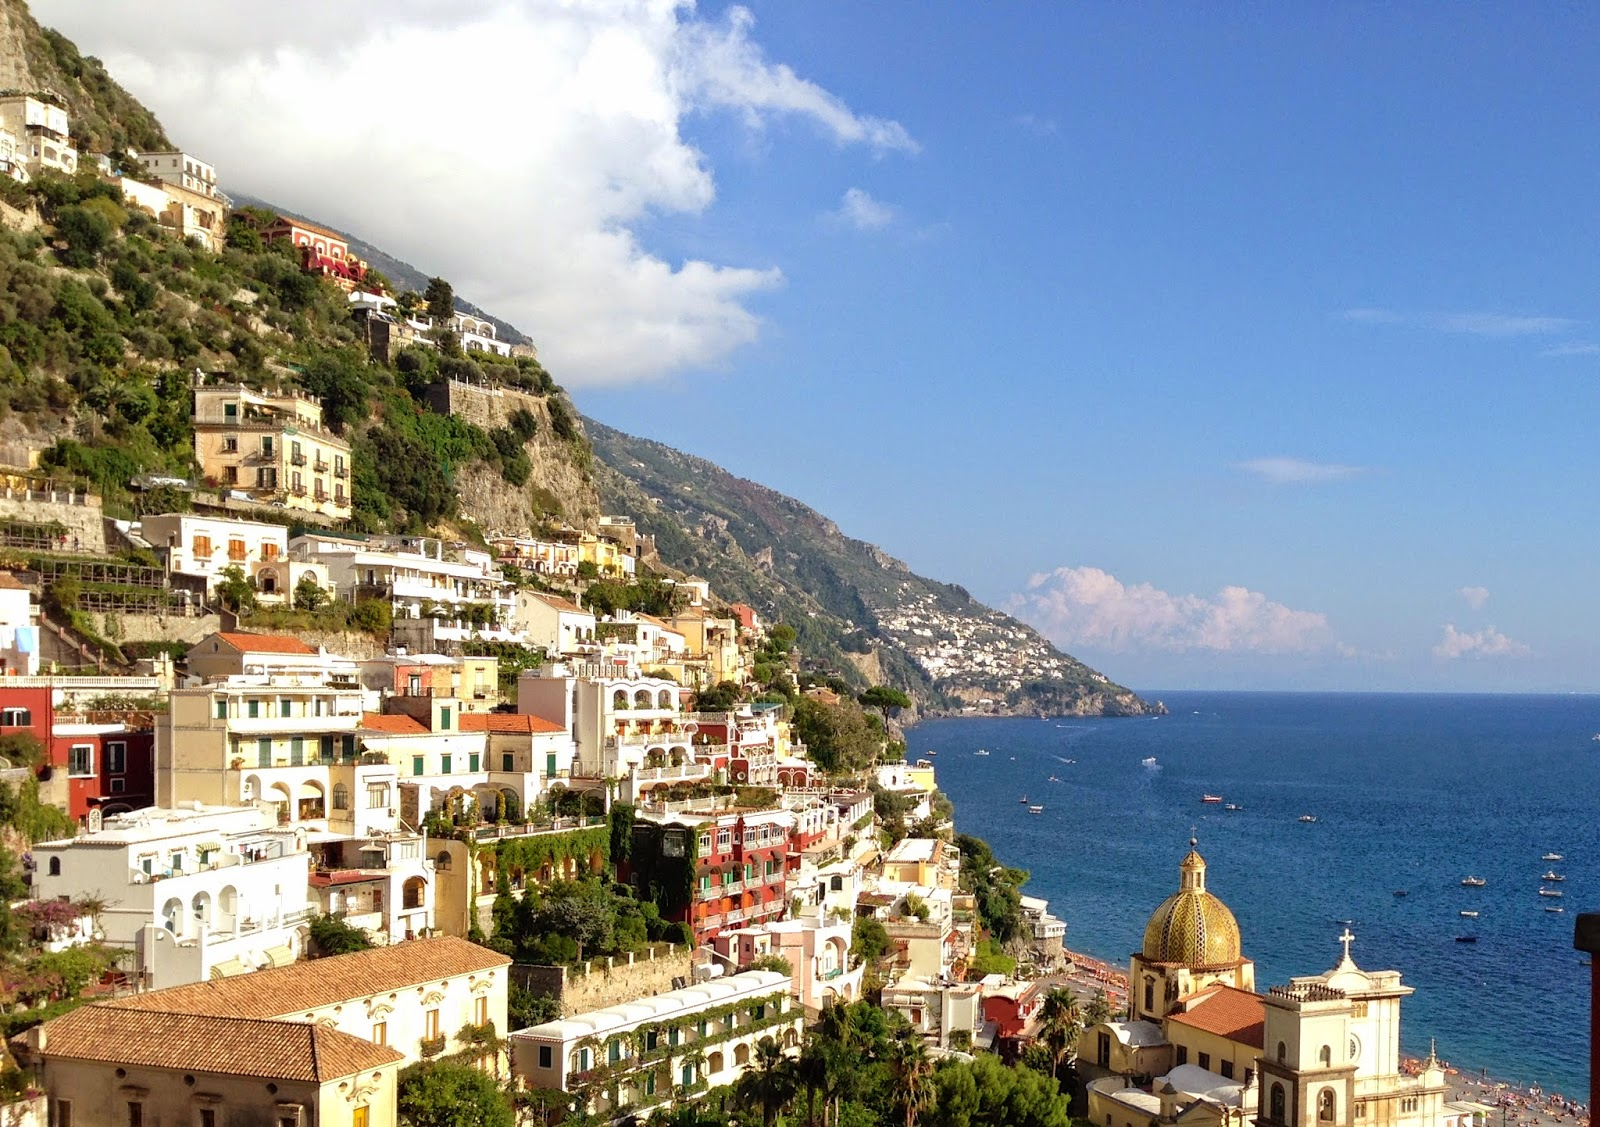 Renting A Car In Positano Italy